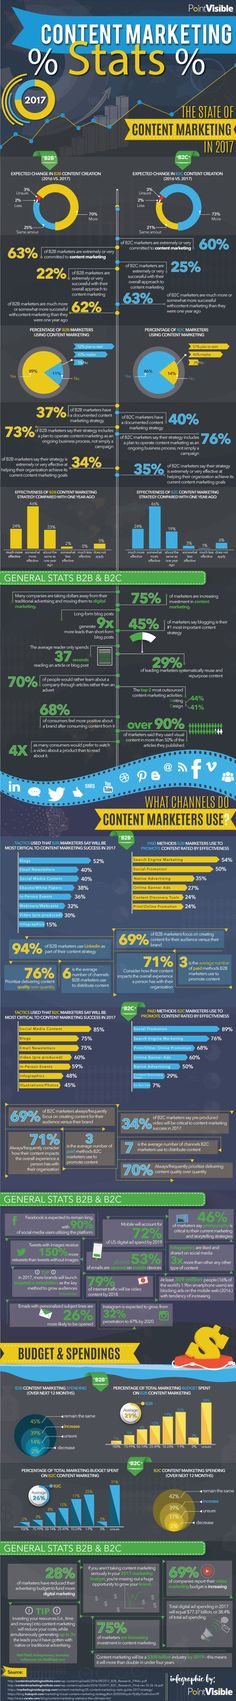 Content Marketing Statistics And Trends #infographic